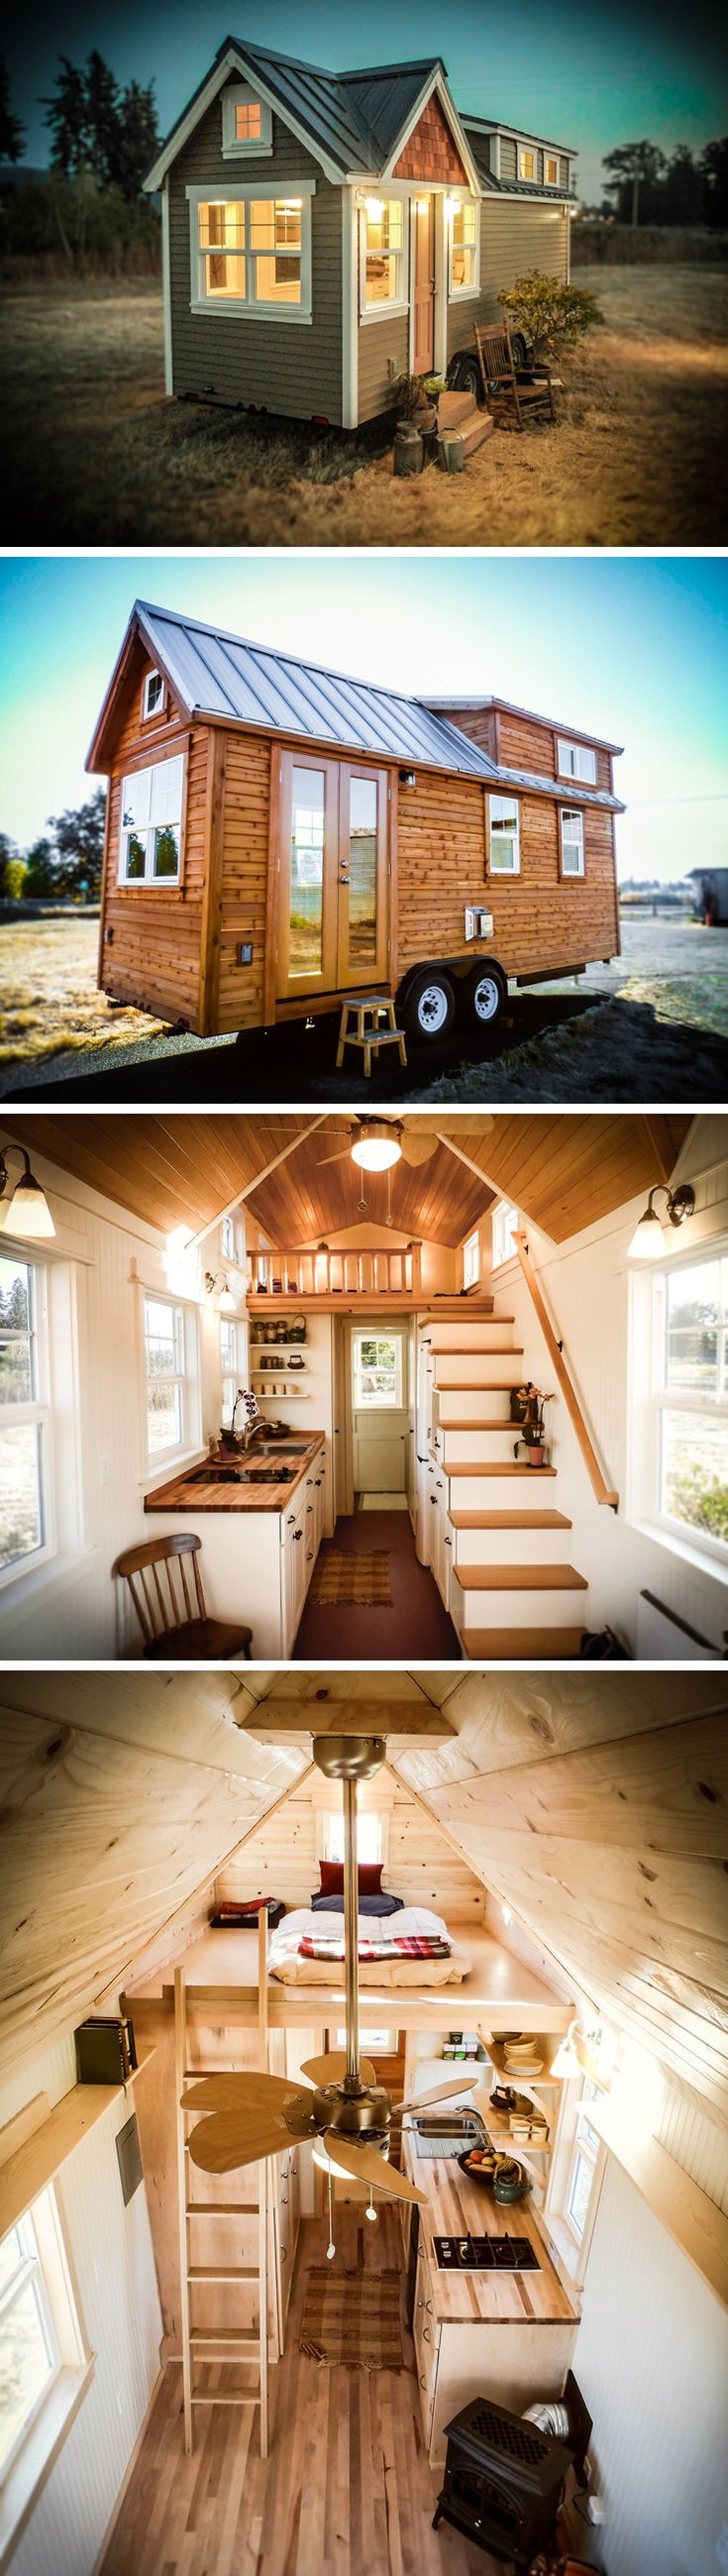 The Ynez model by Greenleaf Tiny Homes is available in 20′, 24′, or 28′ lengths, ranging from 240-304 sq.ft. They offer several interior options (ladder vs stairs, kitchenette vs extended kitchen, etc) as well as Country or Cottage exteriors. Prices start at $54,000.